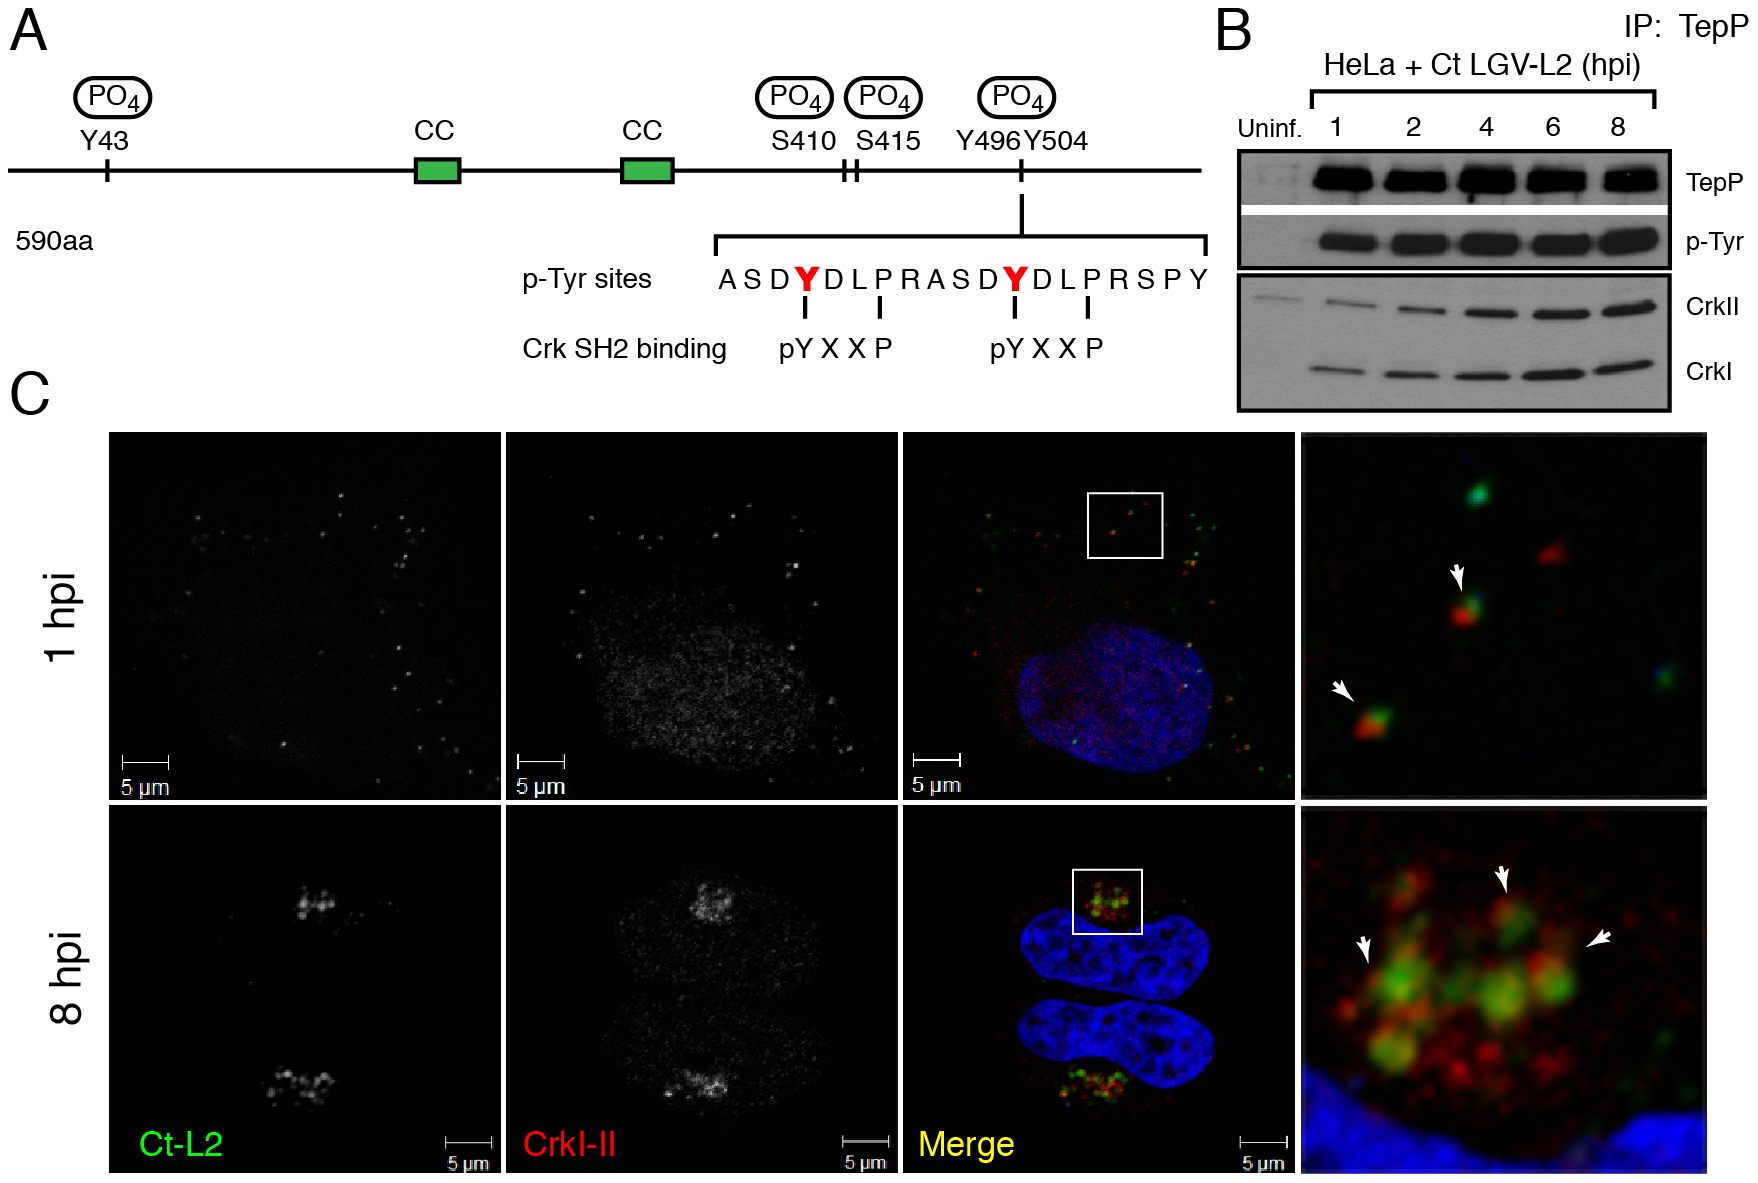 Crk-I and Crk-II bind to tyrosine-phosphorylated TepP and are recruited to nascent inclusions early during infection.